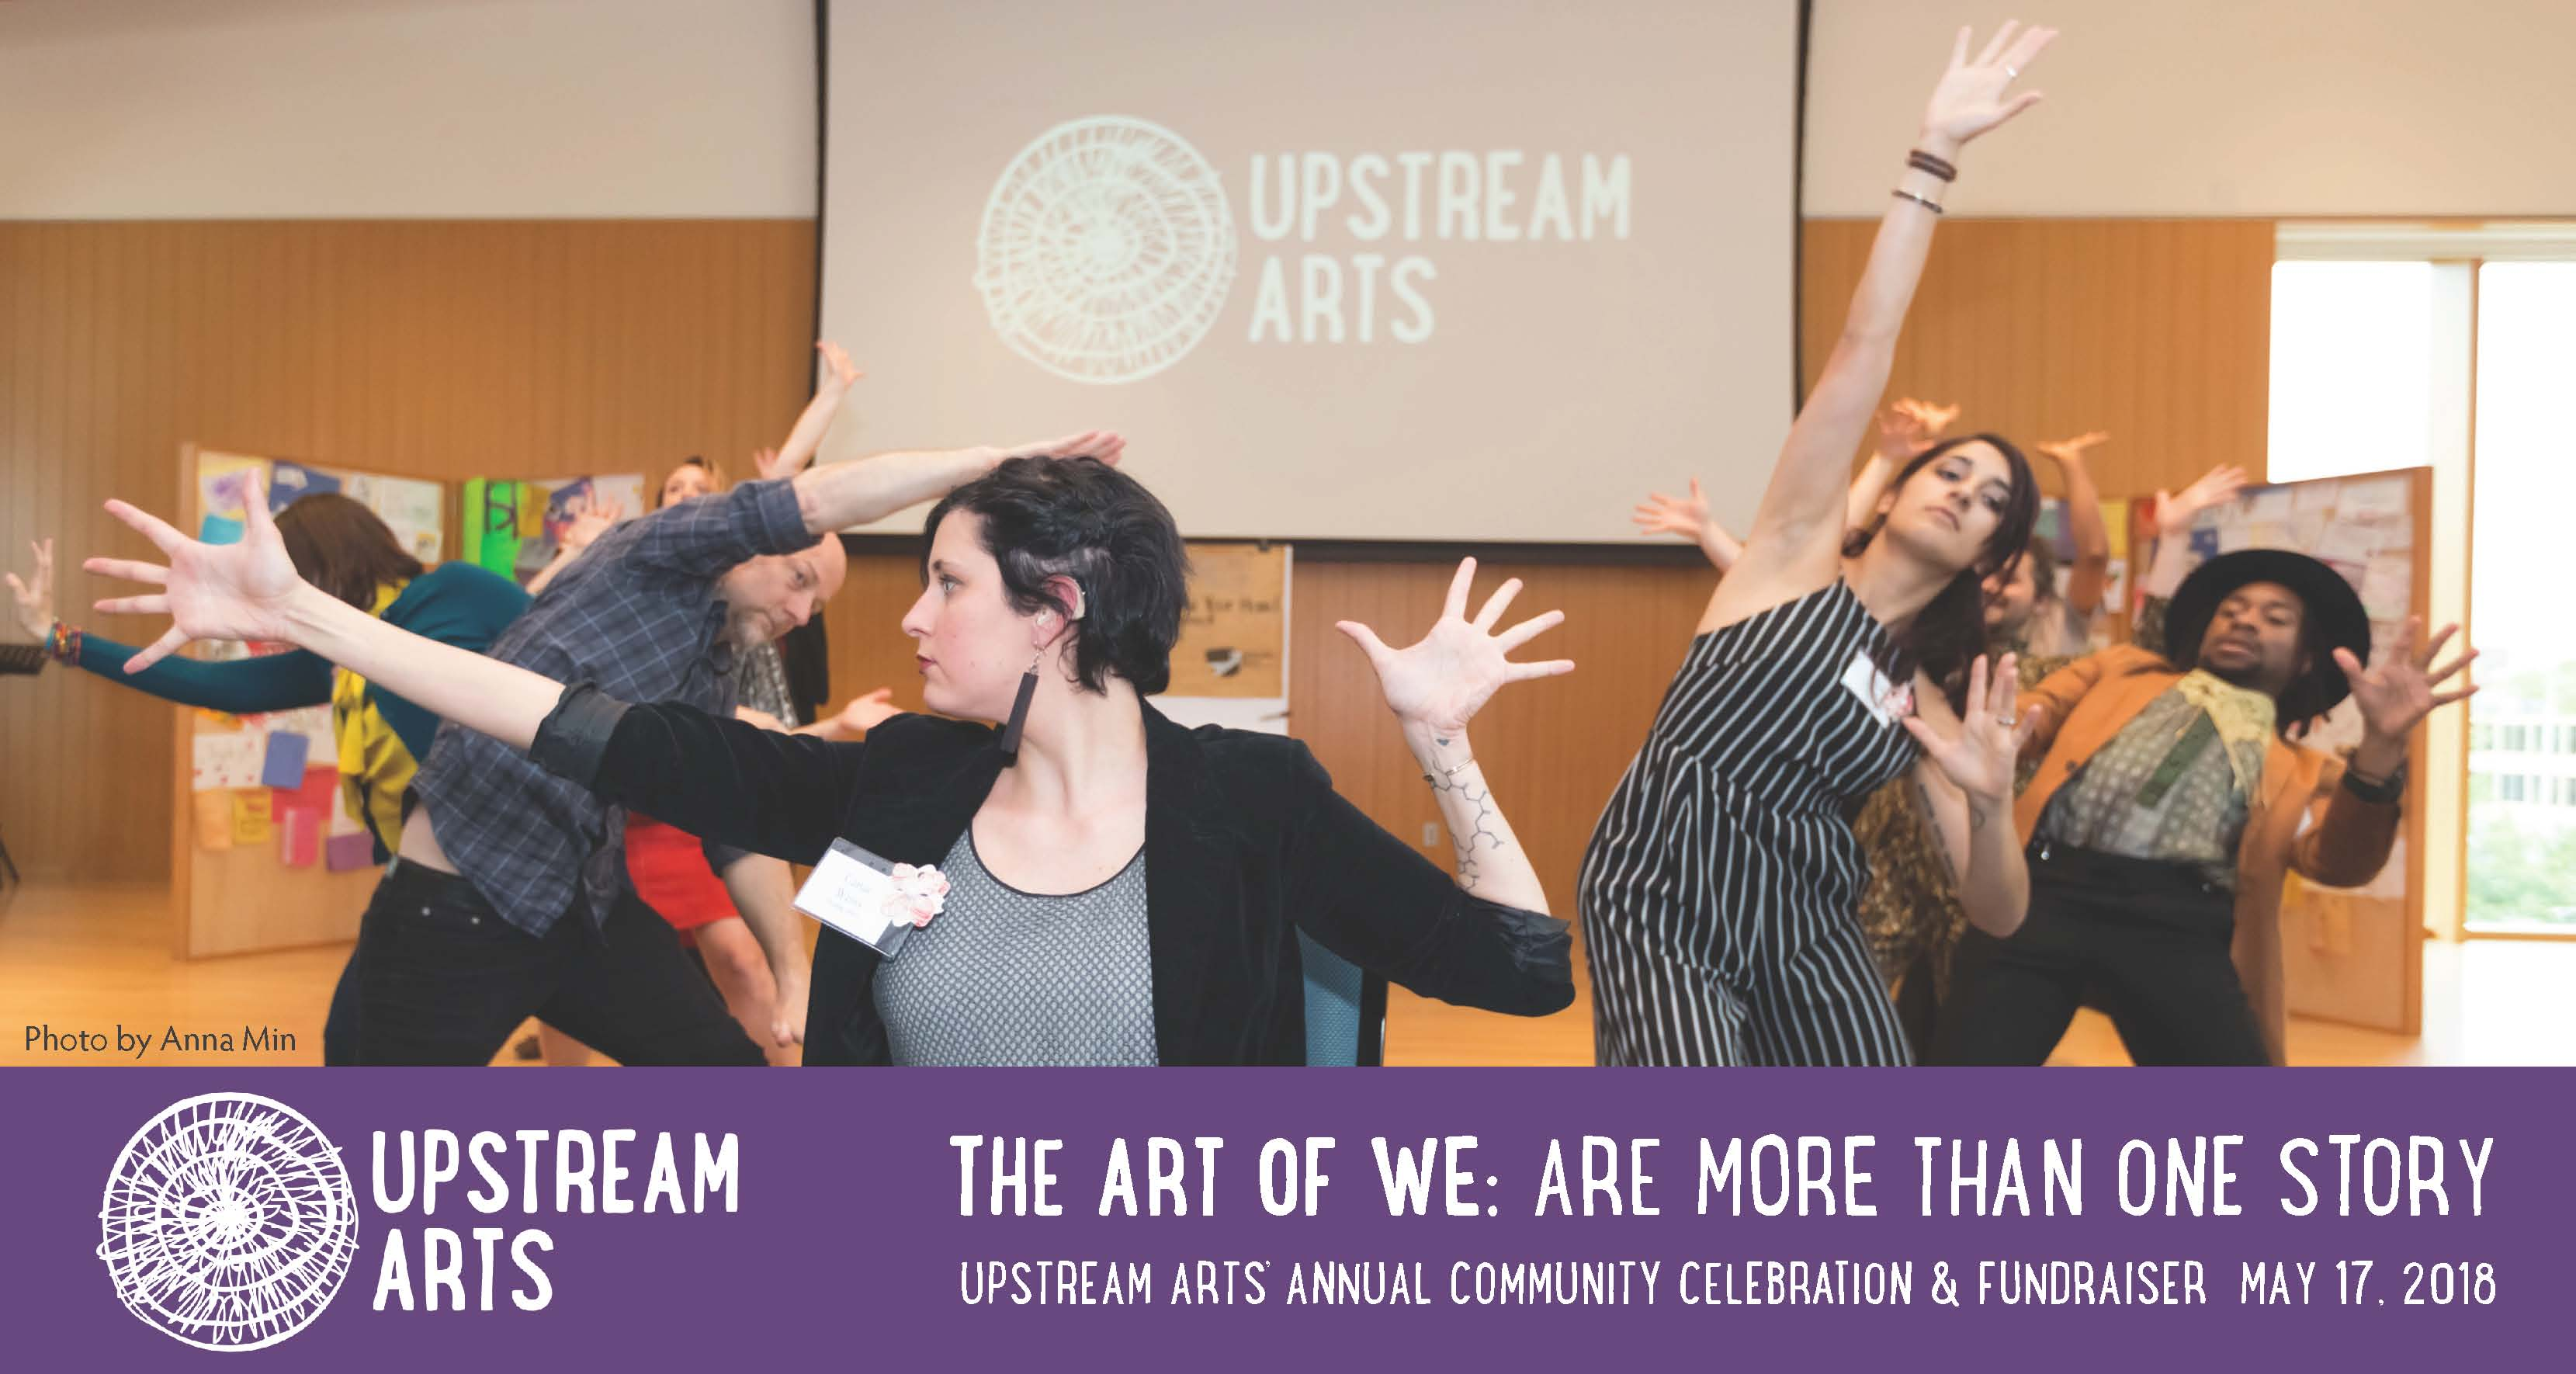 "Postcard image of teaching artists performing at the 2017 Art of We: Are More Than One Story with Upstream Arts logo and text ""The Art of We: Are More Than One Story - Upstream Arts Annual Community Celebration & Fundraiser - May 17, 2018"